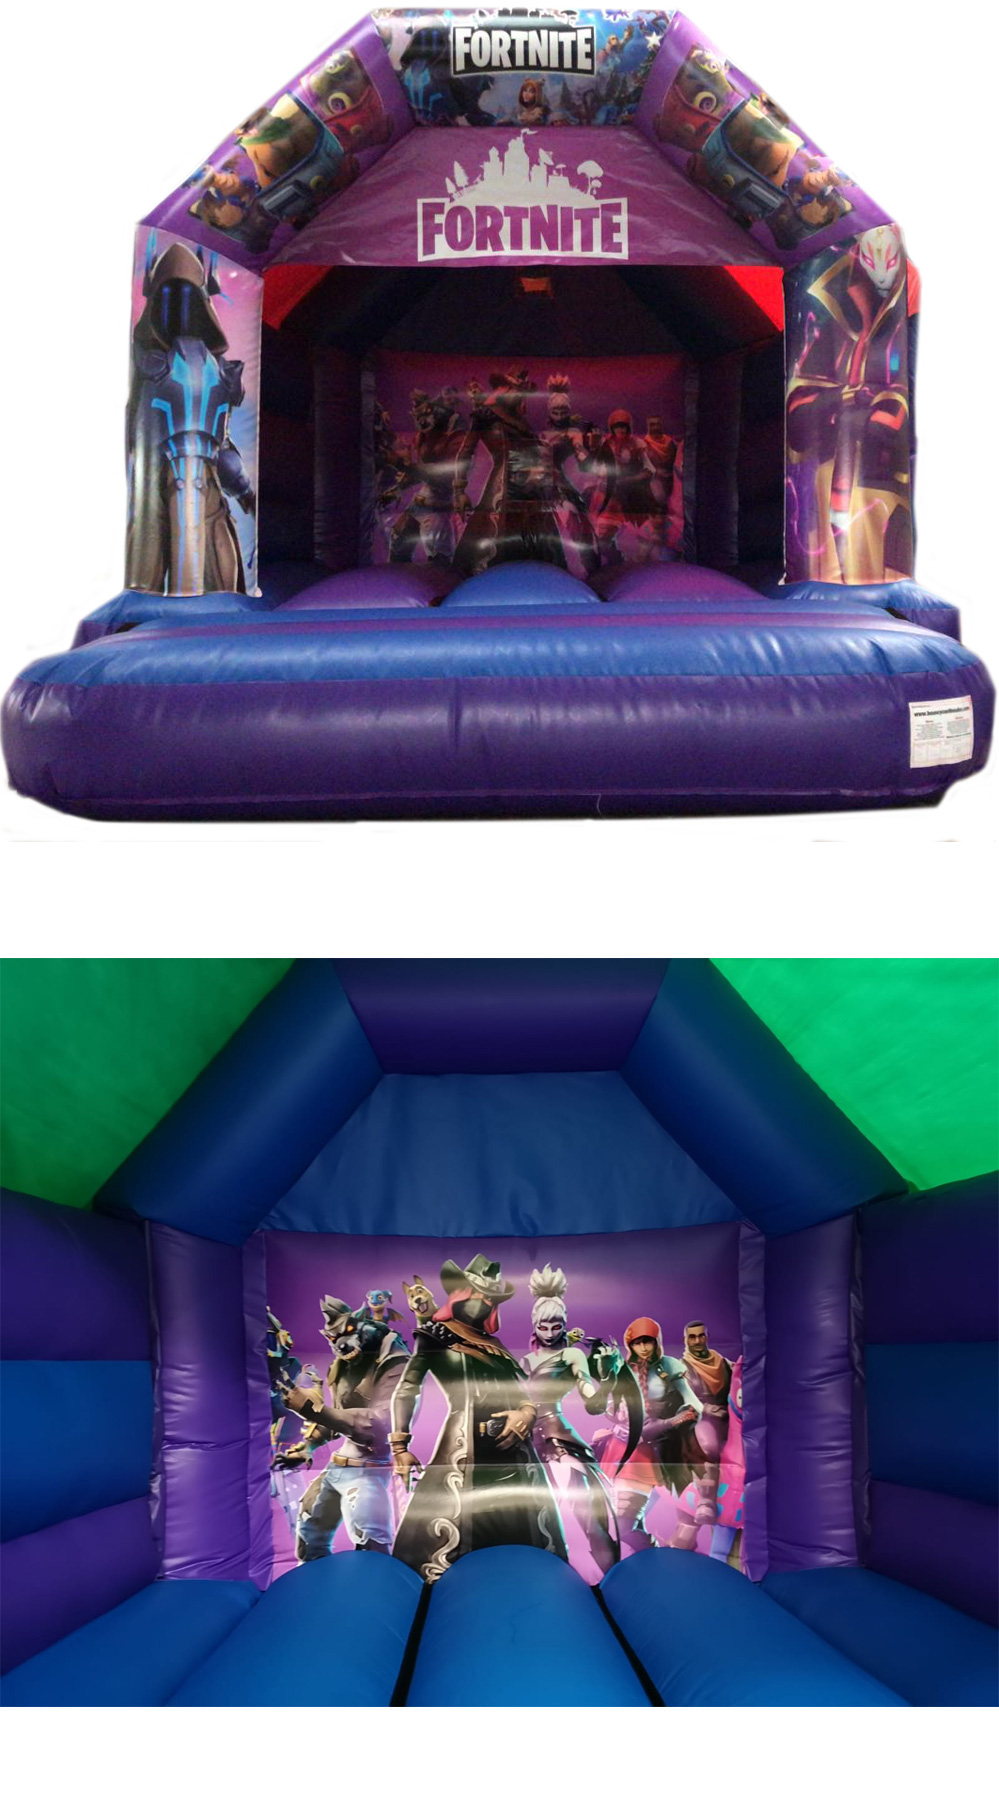 Bouncy Castle Sales - BC512 - Bouncy Inflatable for sale